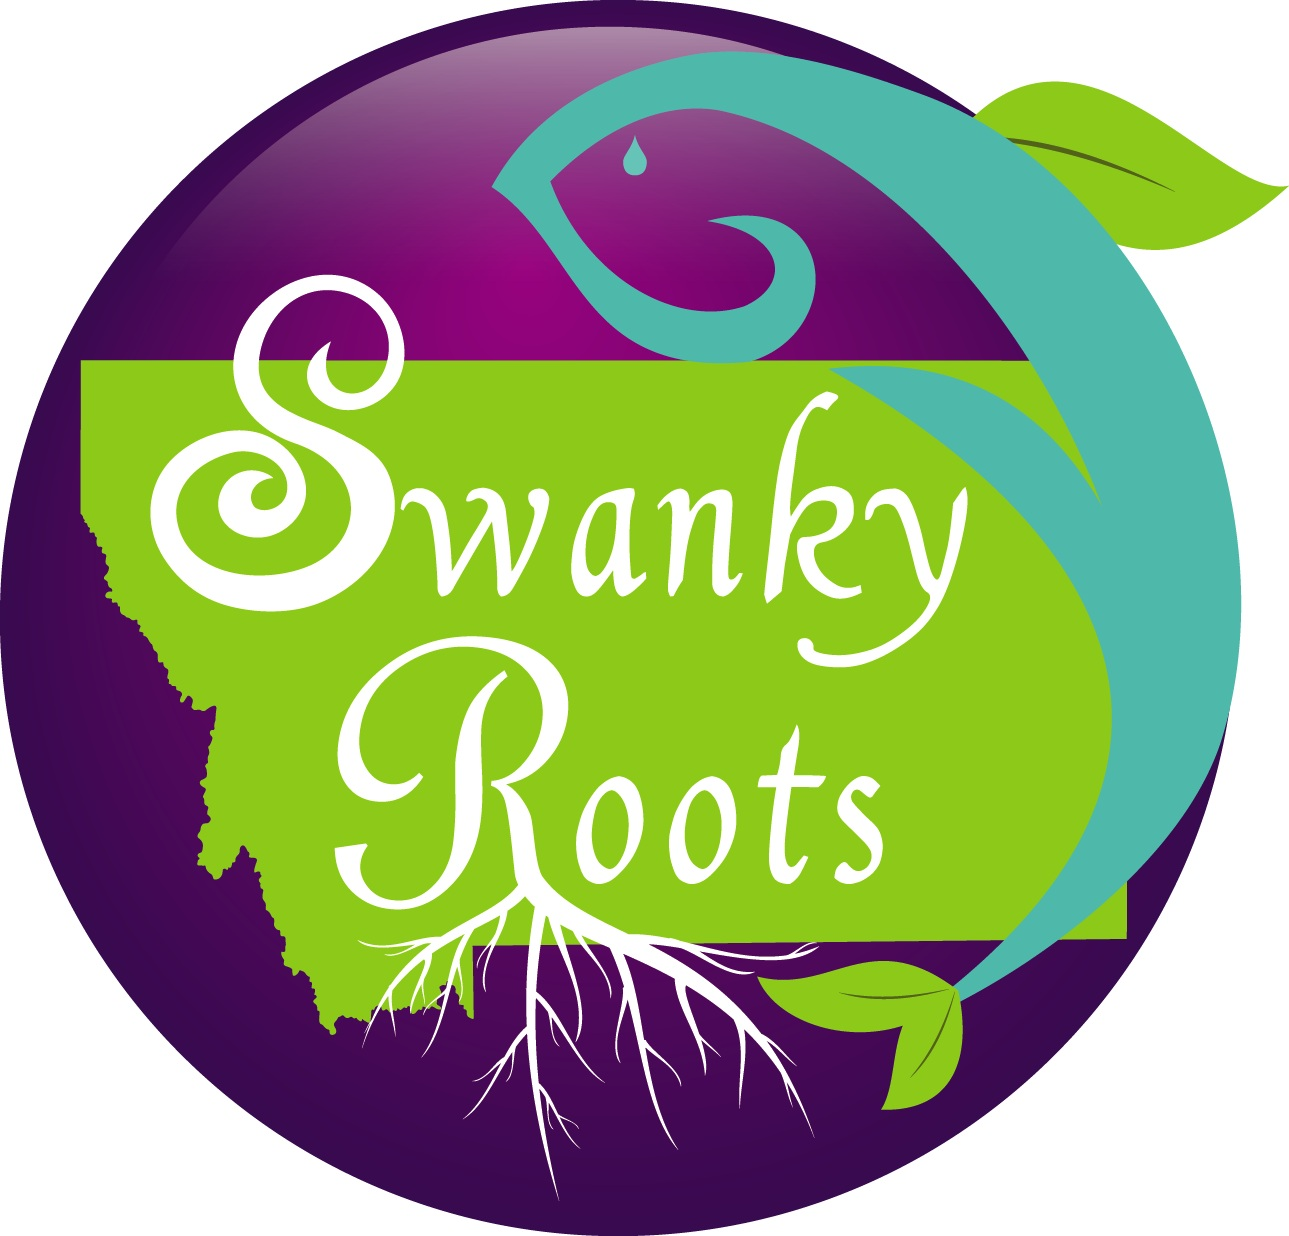 Swanky Root Aquaponics Farm - Billings MT